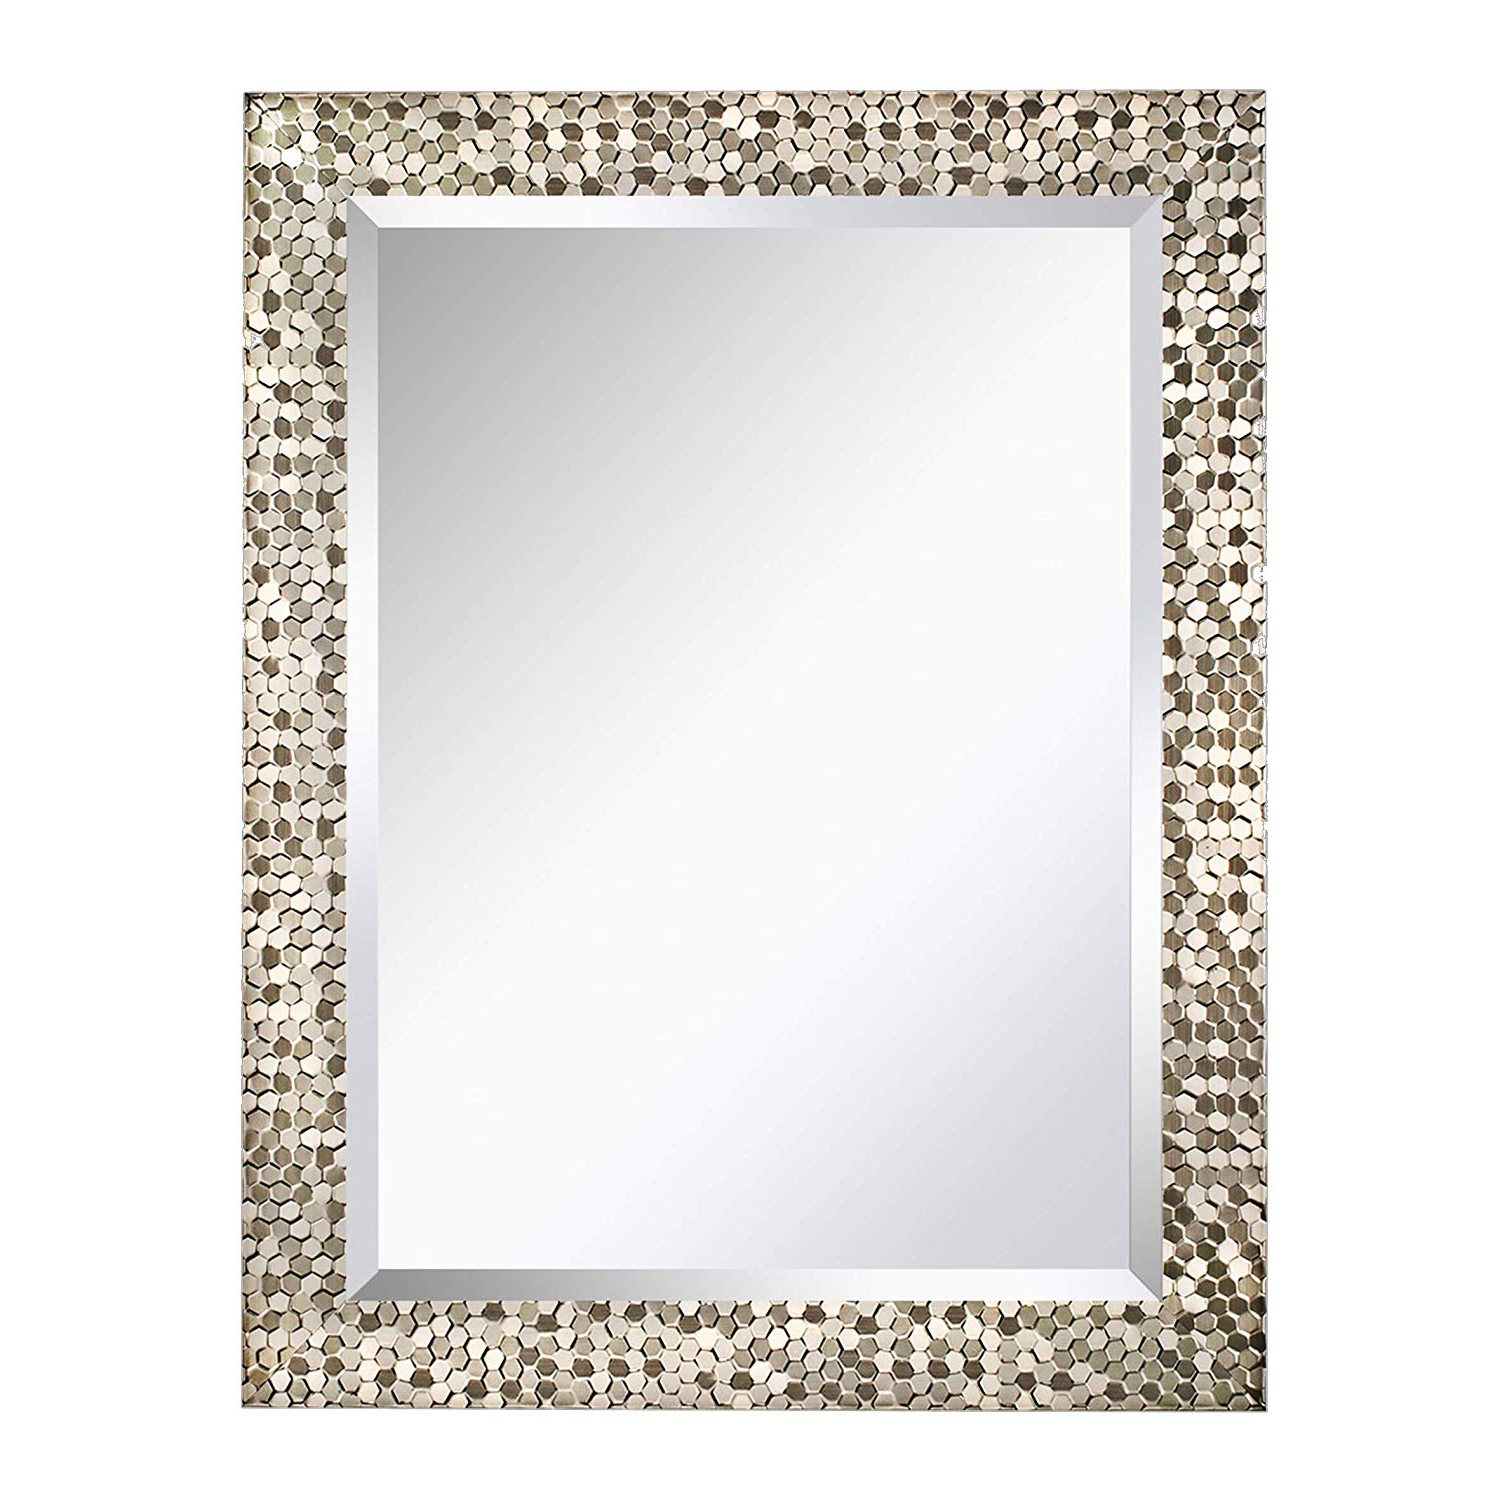 "Popular Mirror Trend 24"" X 32"" Square Beveled Mirrors For Wall Mirrors For Living Room Large Bathroom Mirrors Wall Mounted Mosaic Design Mirror For Wall With Large Decorative Wall Mirrors (View 8 of 20)"